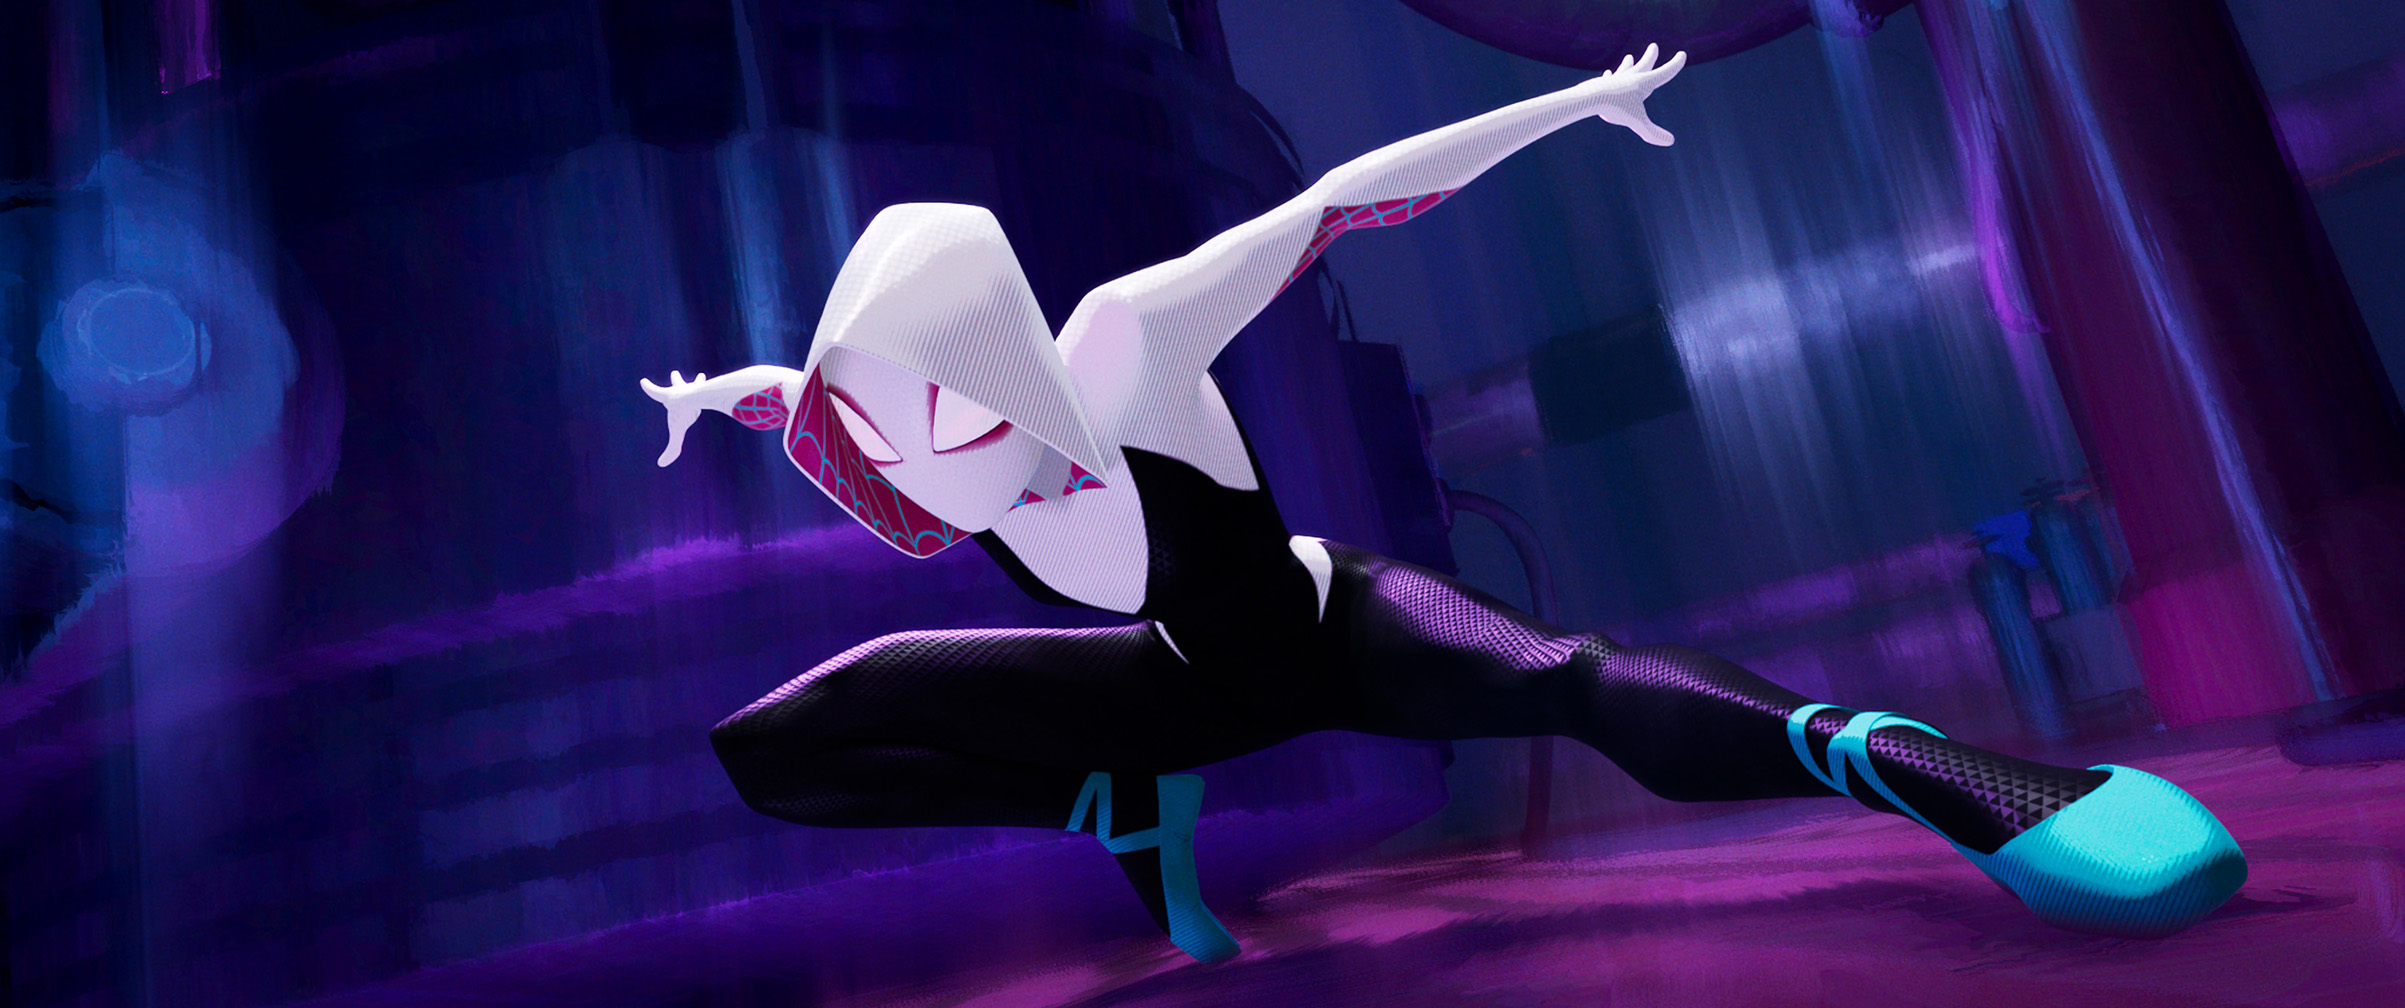 In one of Into the Spider-Verse's many parallel worlds, Peter's friend Gwen Stacy gets bitten by the radioactive spider. She becomes the hero and Peter the one who needs saving.